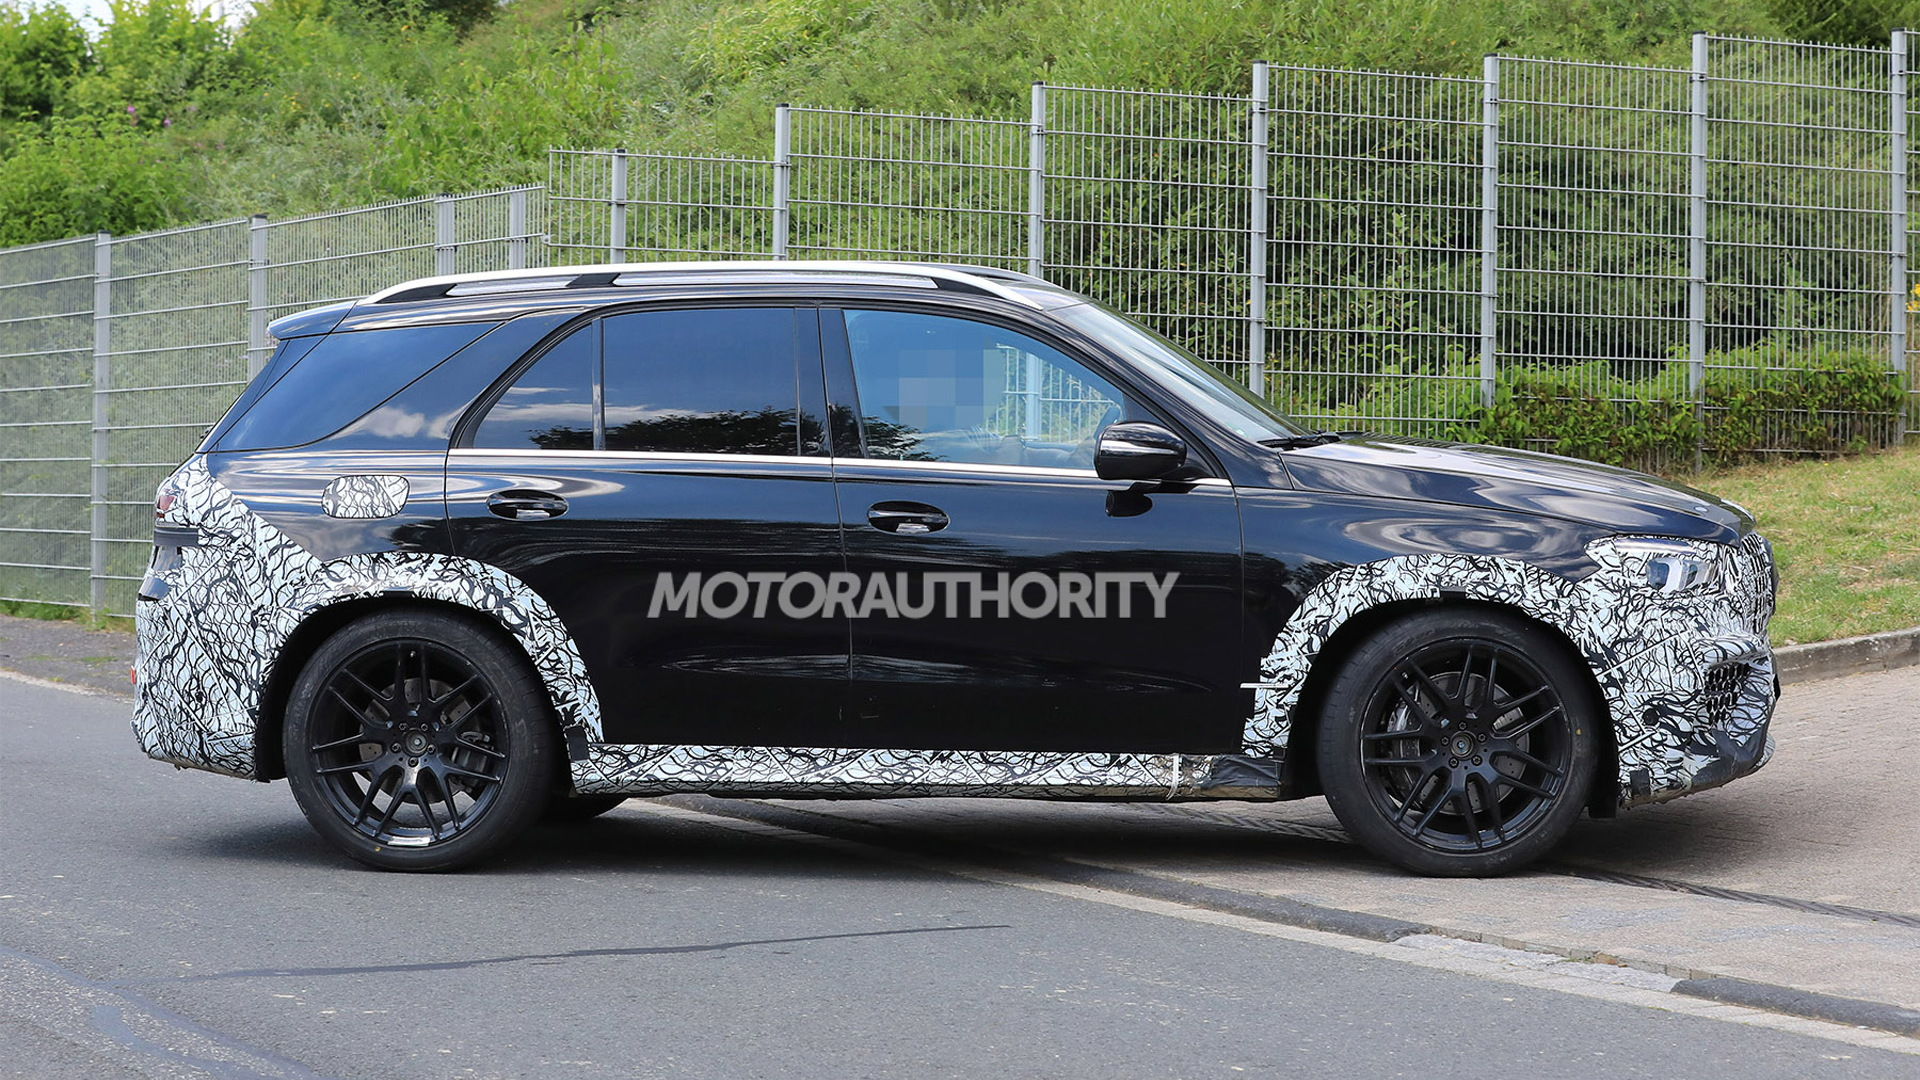 2021 Mercedes-AMG GLE63 spy shots - Photo credit: S. Baldauf/SB-Medien